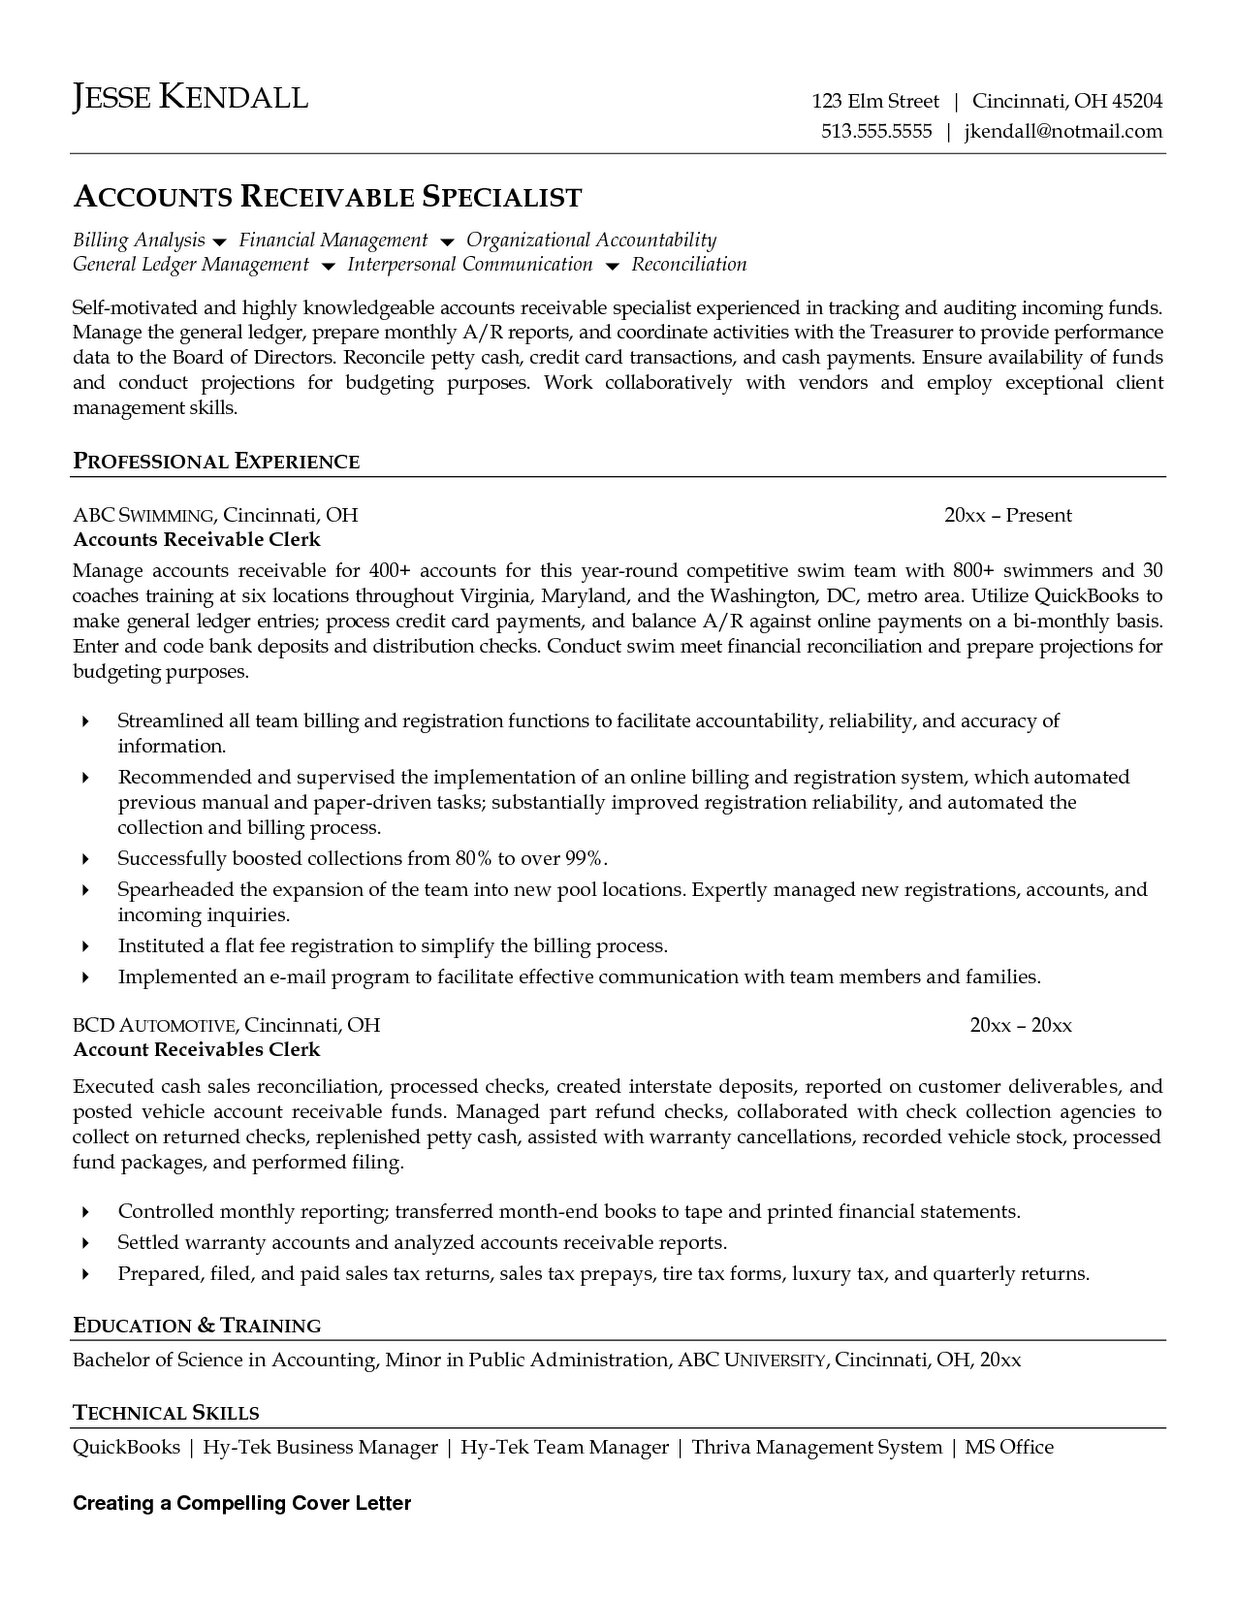 Account Receivable Resume Resume And Cover Letter Writing Rubrichow To Write The Best